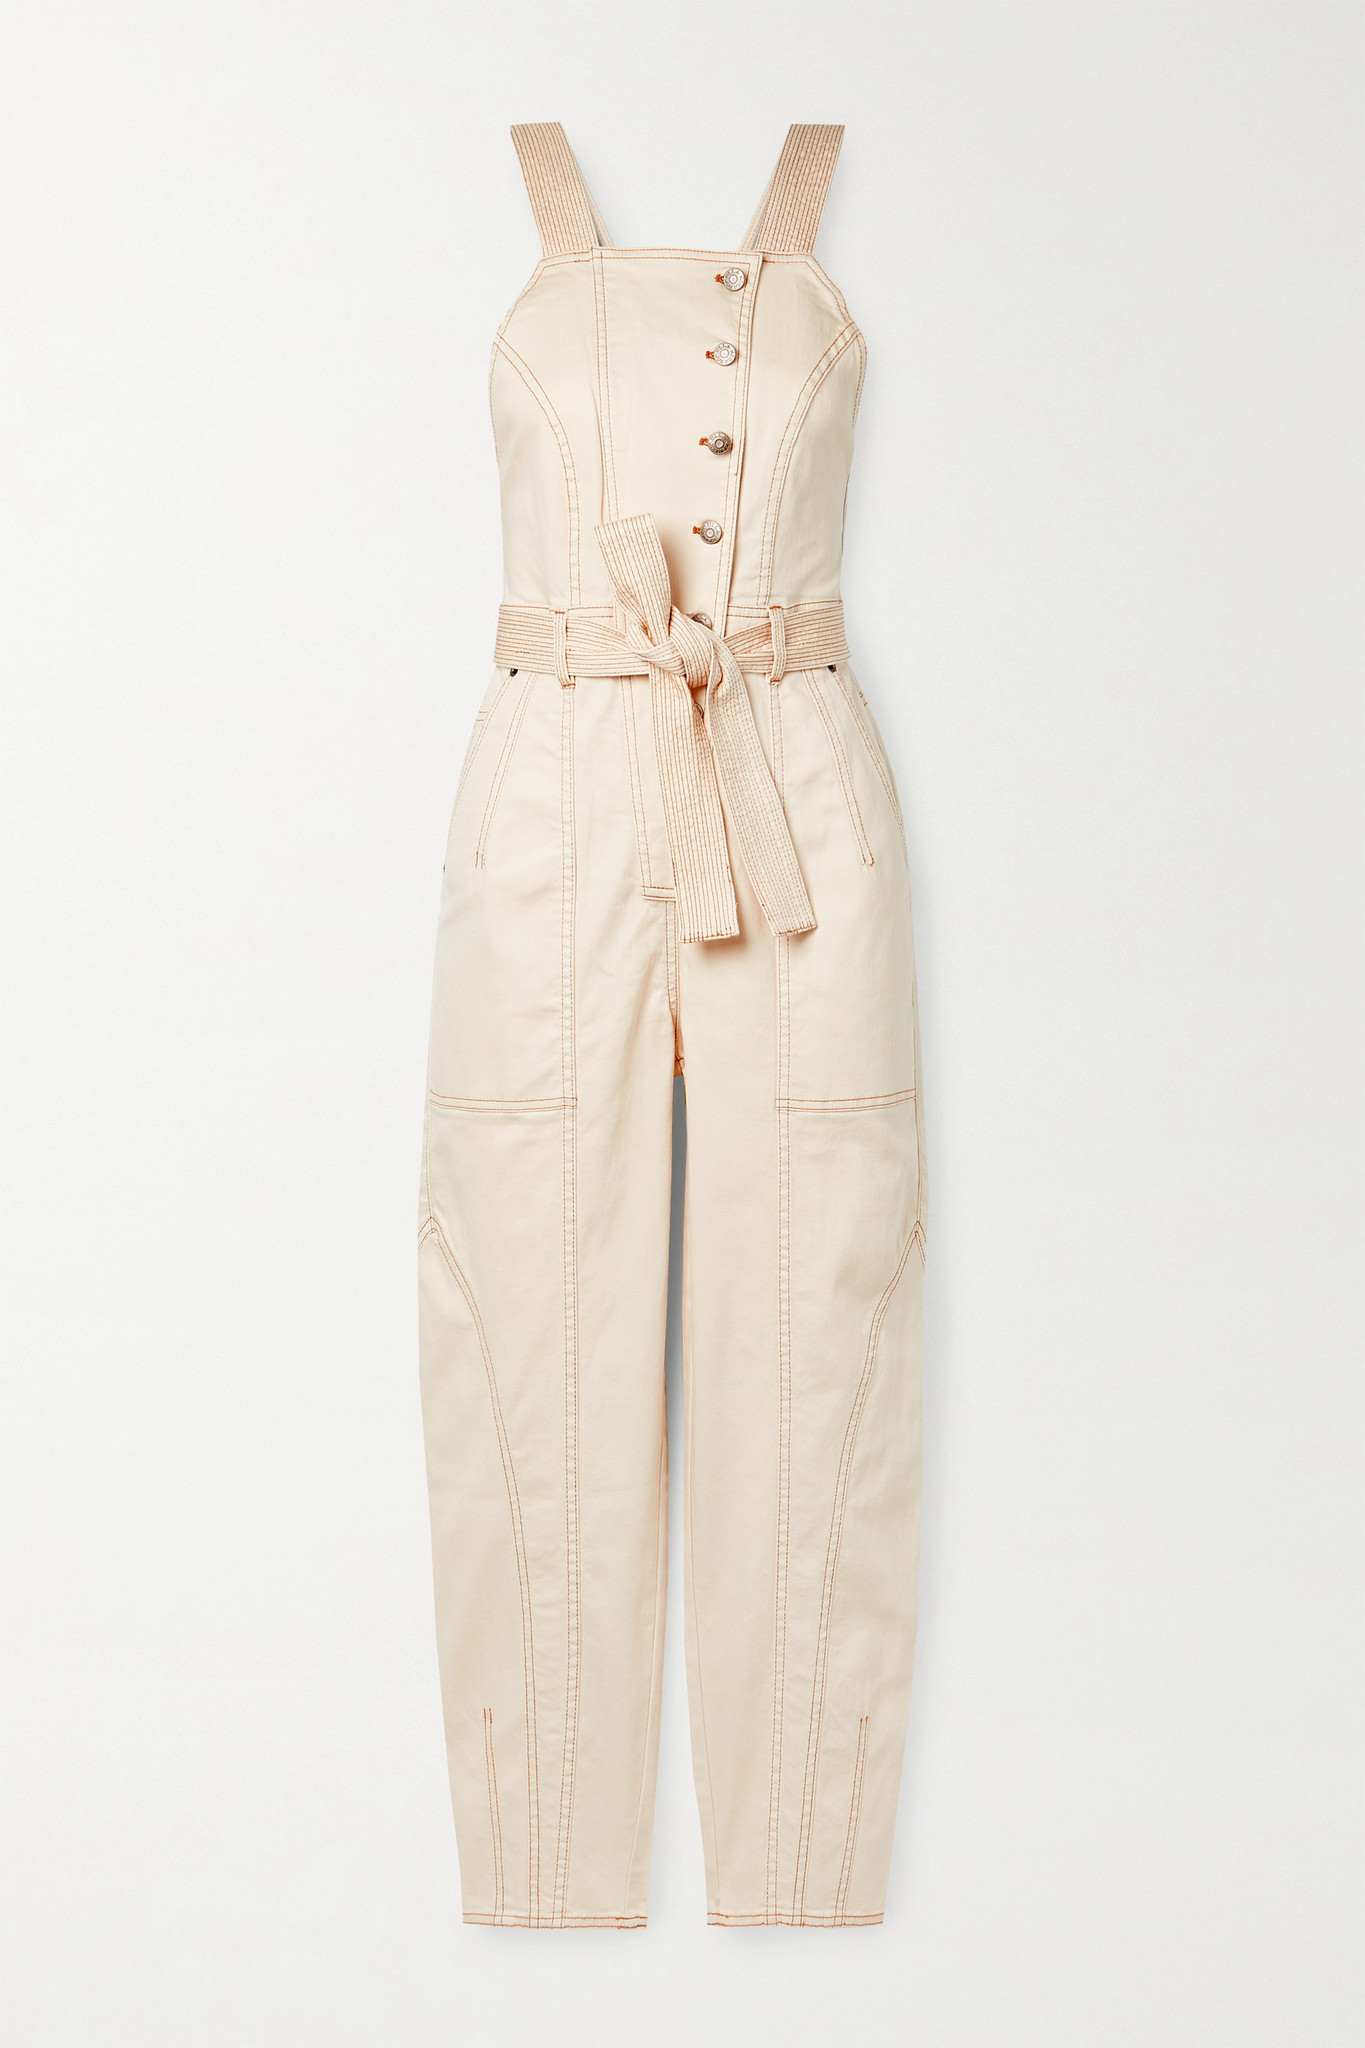 ULLA JOHNSON - Archer Belted Denim Jumpsuit - Ecru - US4